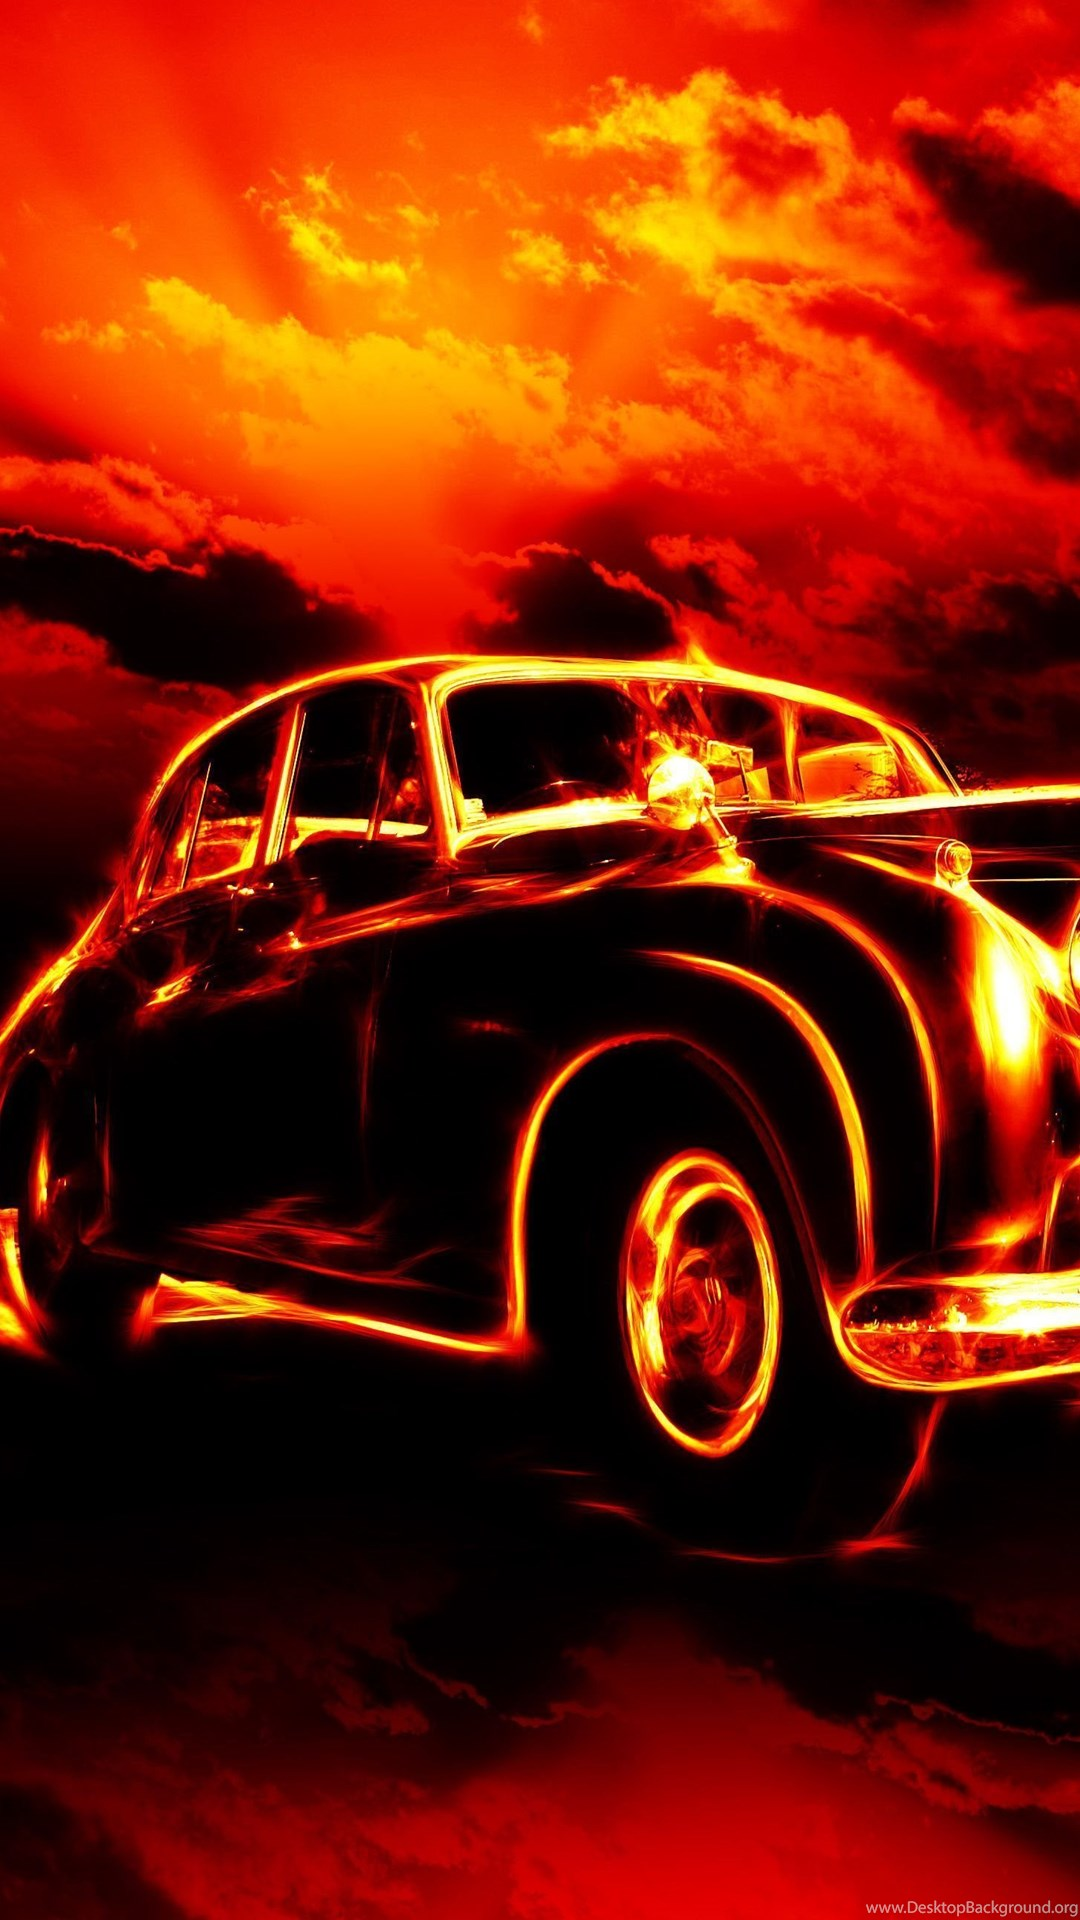 Download Wallpapers Fire Flame Hell Classic Car City Red Sky